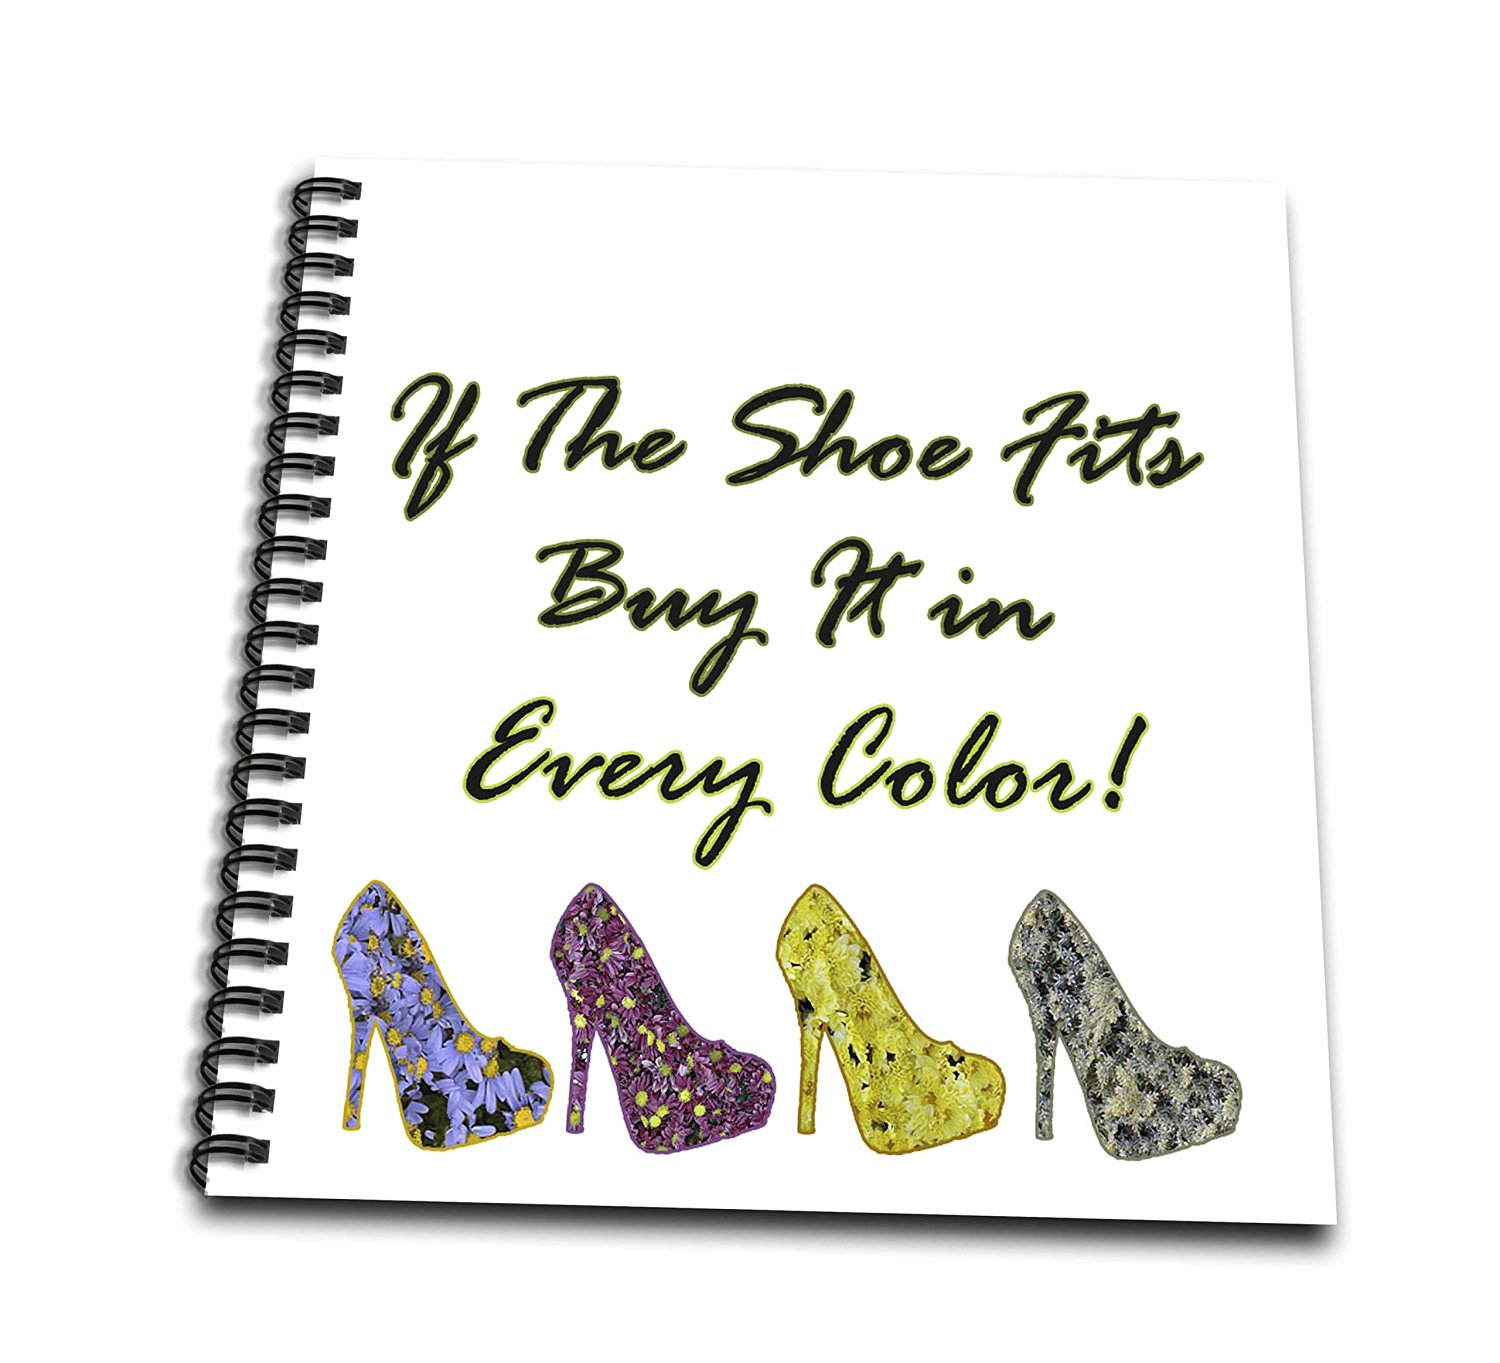 Buy Rinapiro Funny Quotes If The Shoe Fits Buy It In Every Color